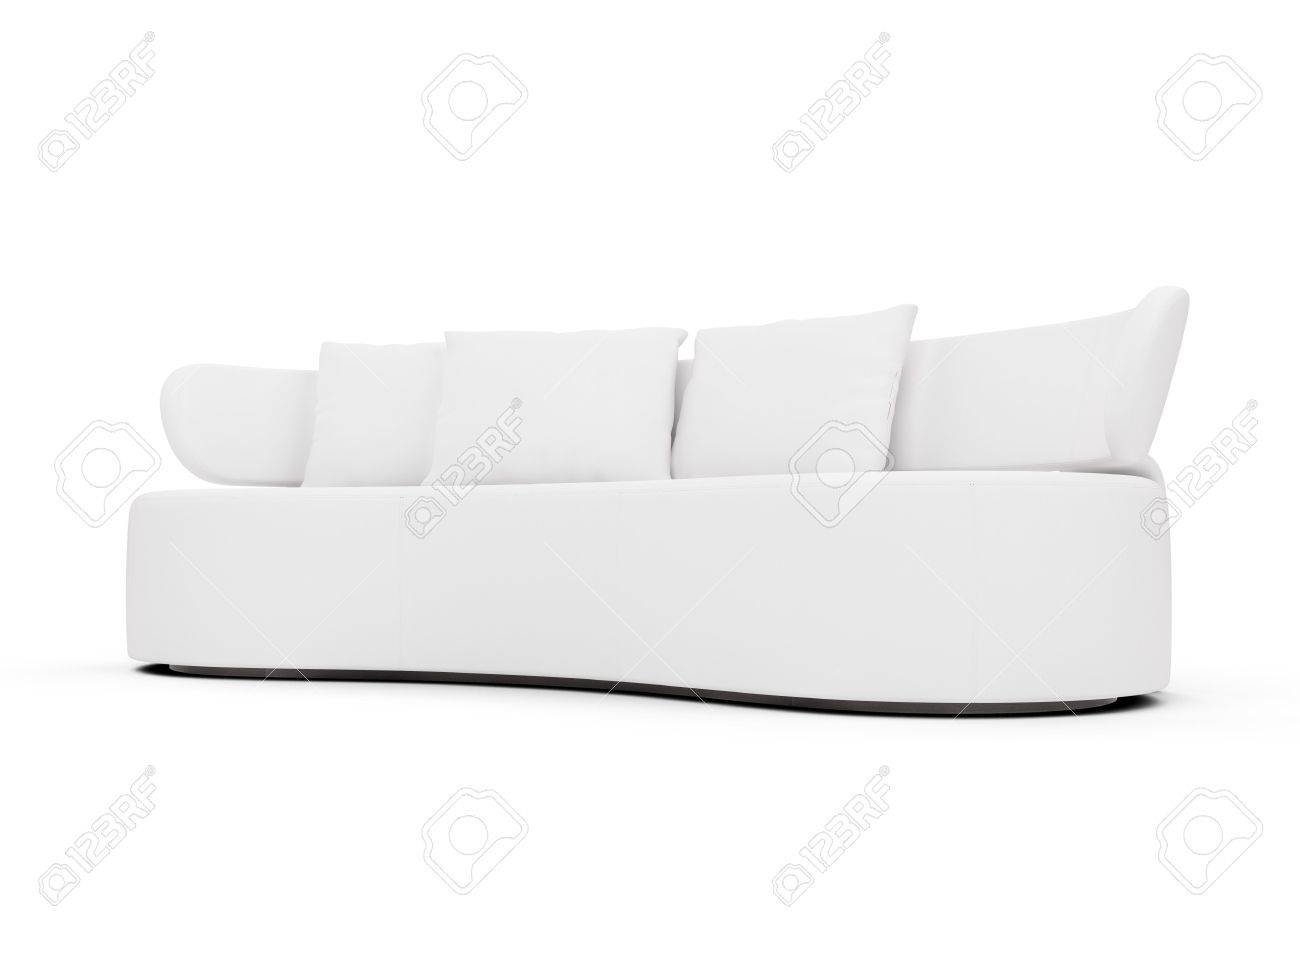 isolated couch over white background Stock Photo - 4684276